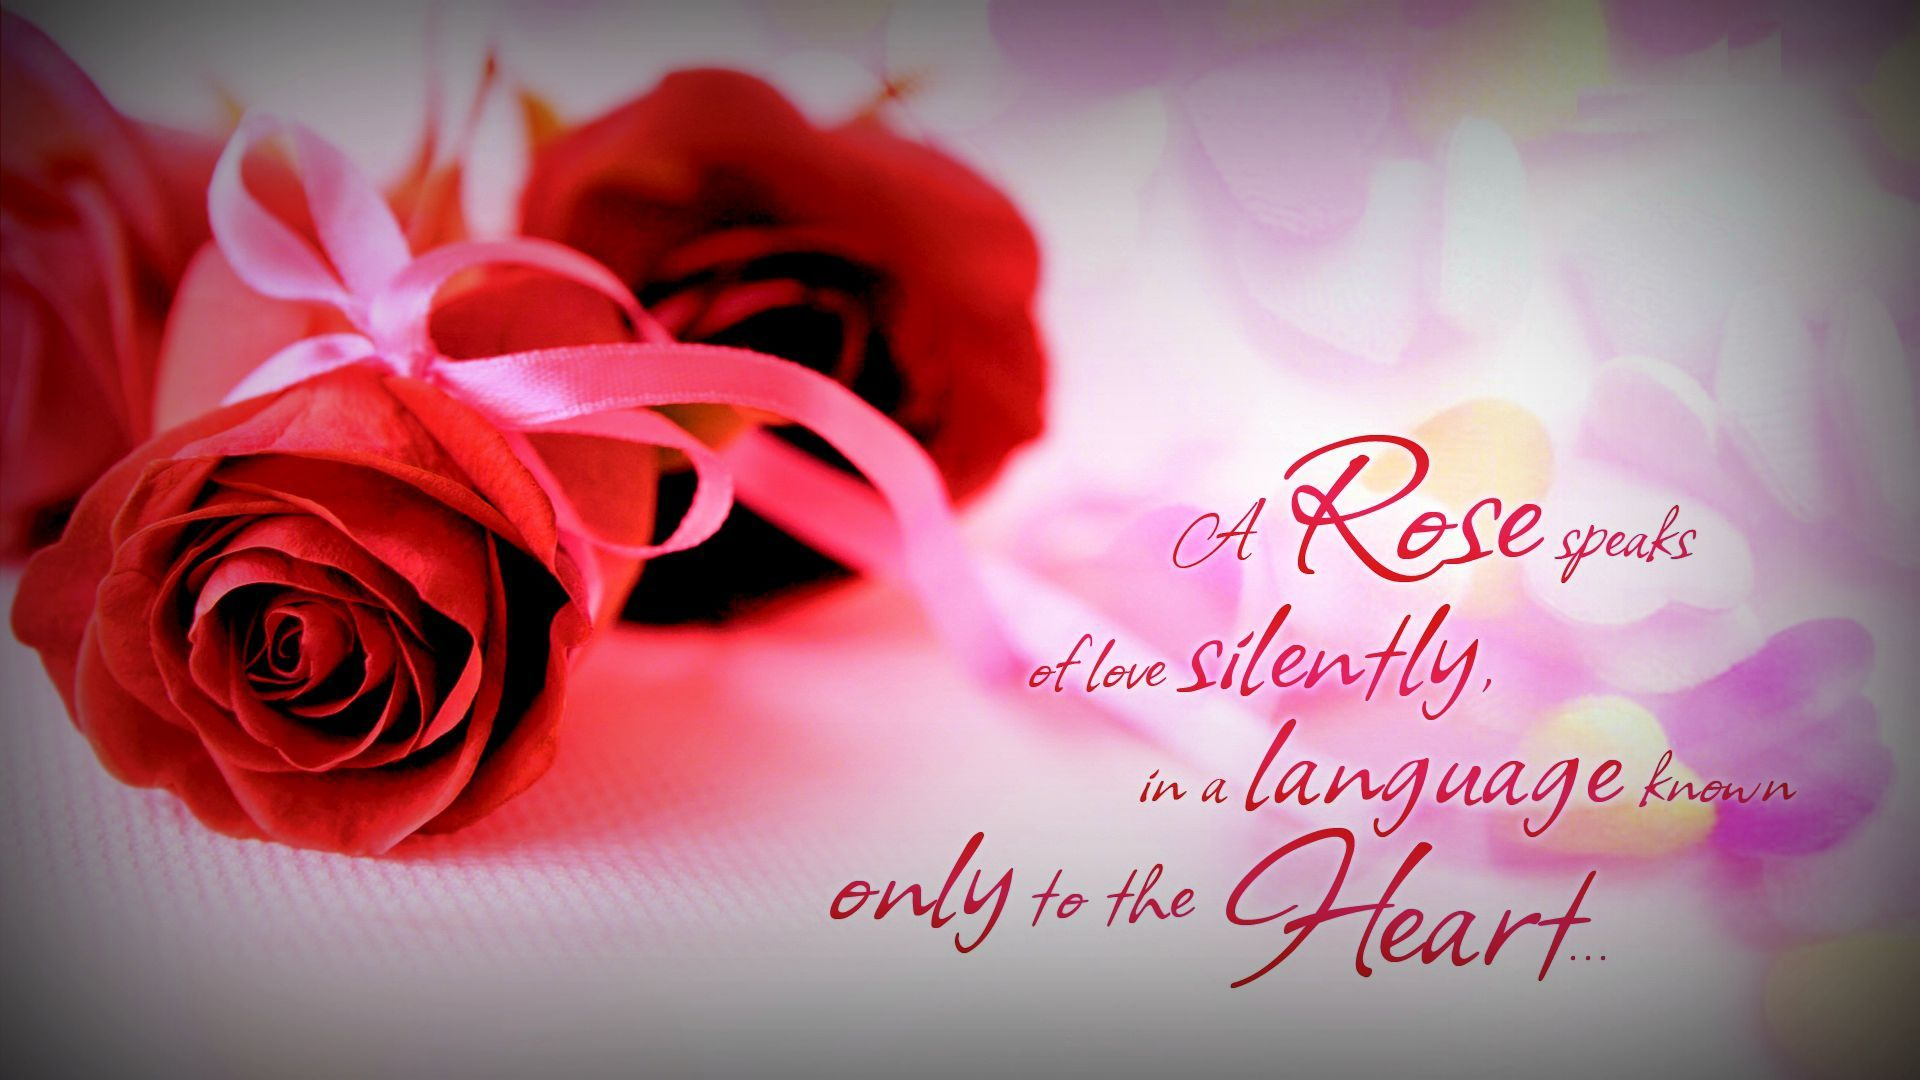 A rose speaks high quality wallpapers qoutes and blessings a rose speaks romantic flowersbeautiful flowersbeautiful love quotesmorning izmirmasajfo Choice Image